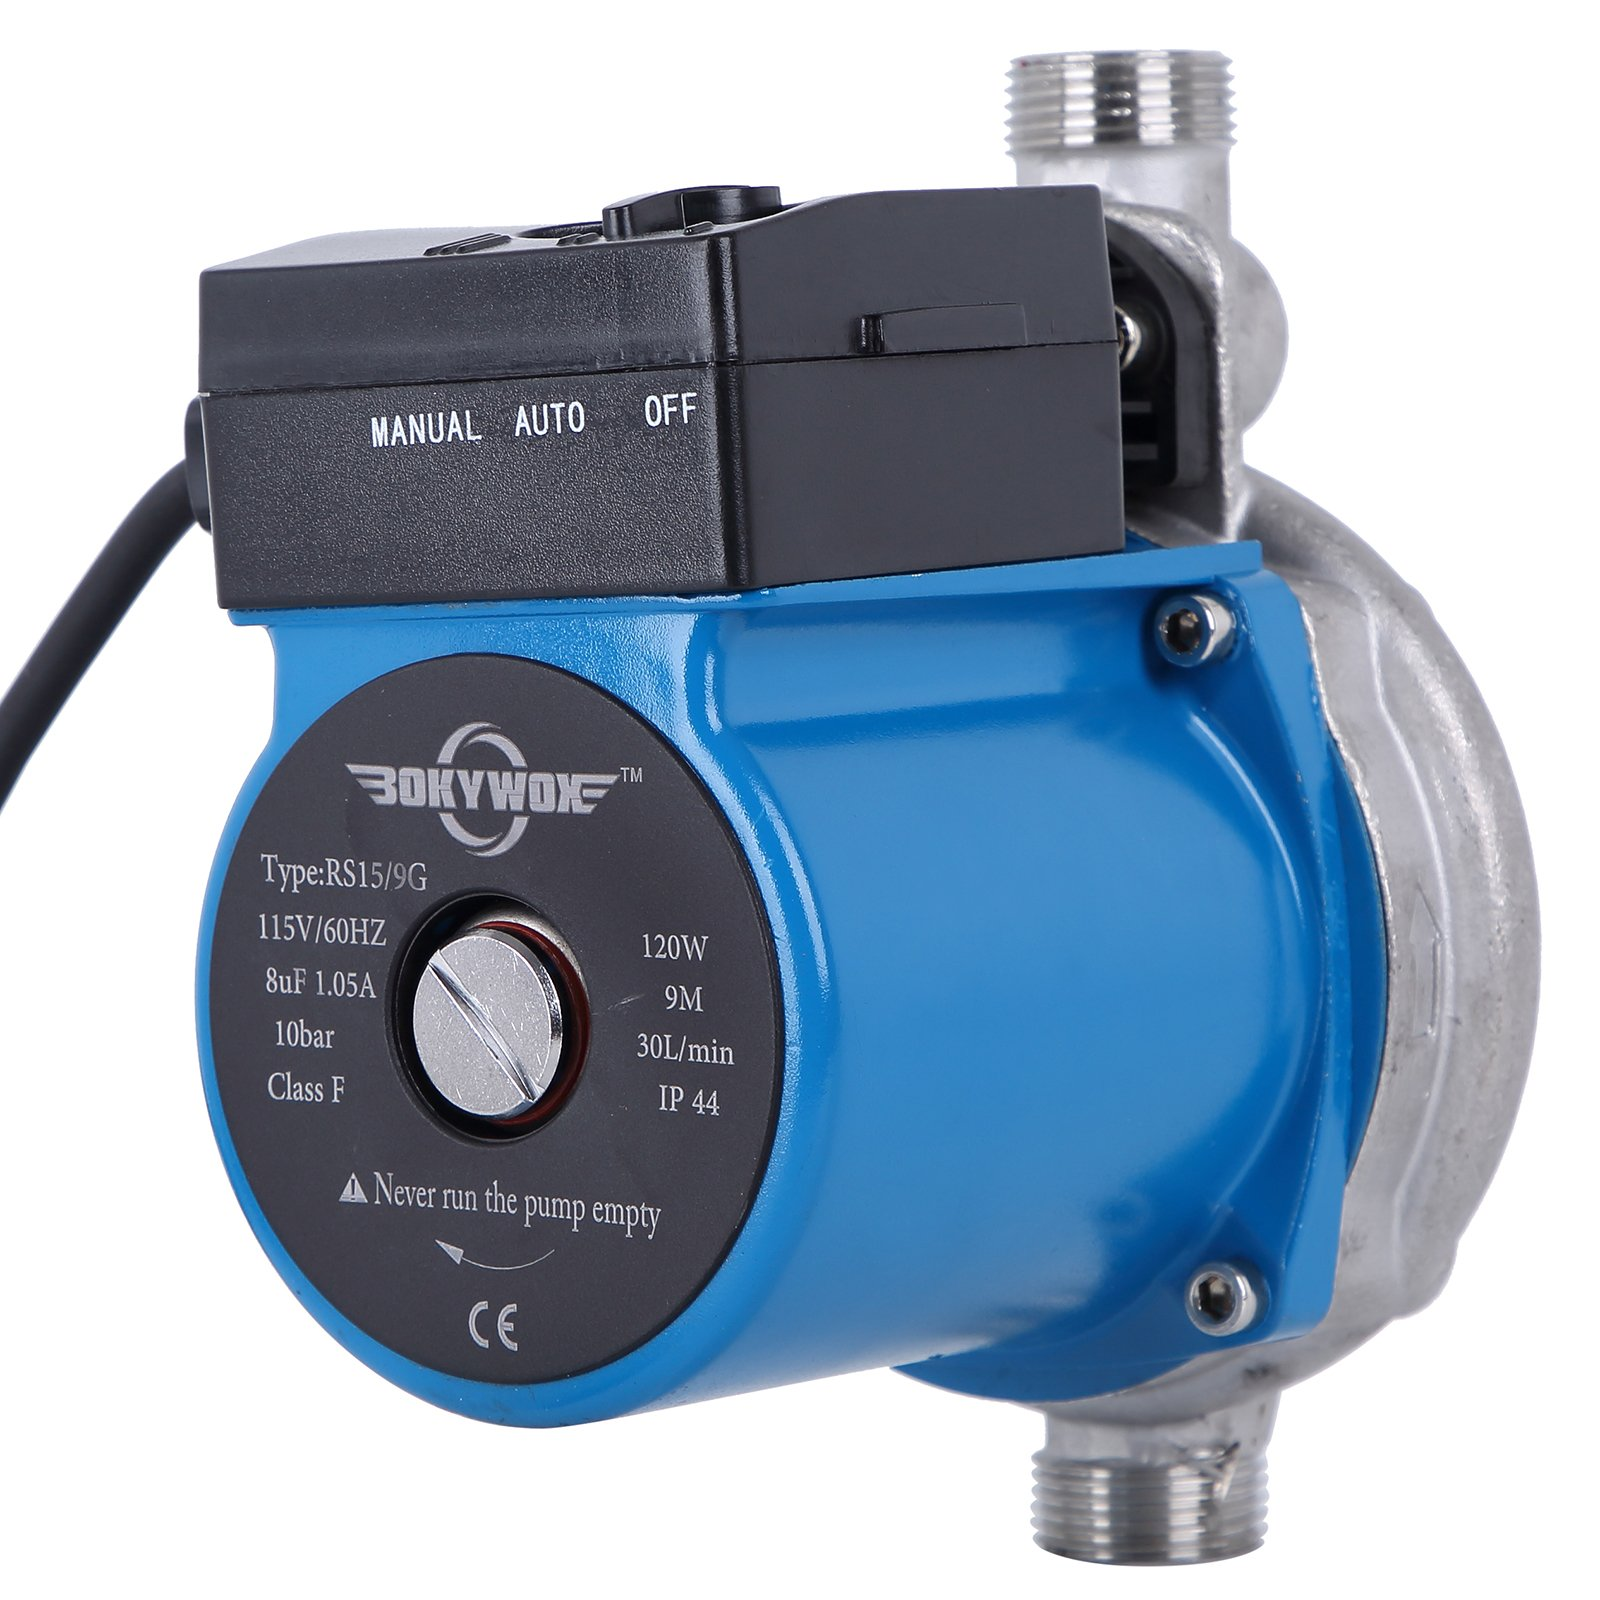 BOKYWOX 3/4'' 110V Hot Water Circulation Pump 120W Automatic Booster Water Pump For Solar Heater System(automatic stainless steel blue)